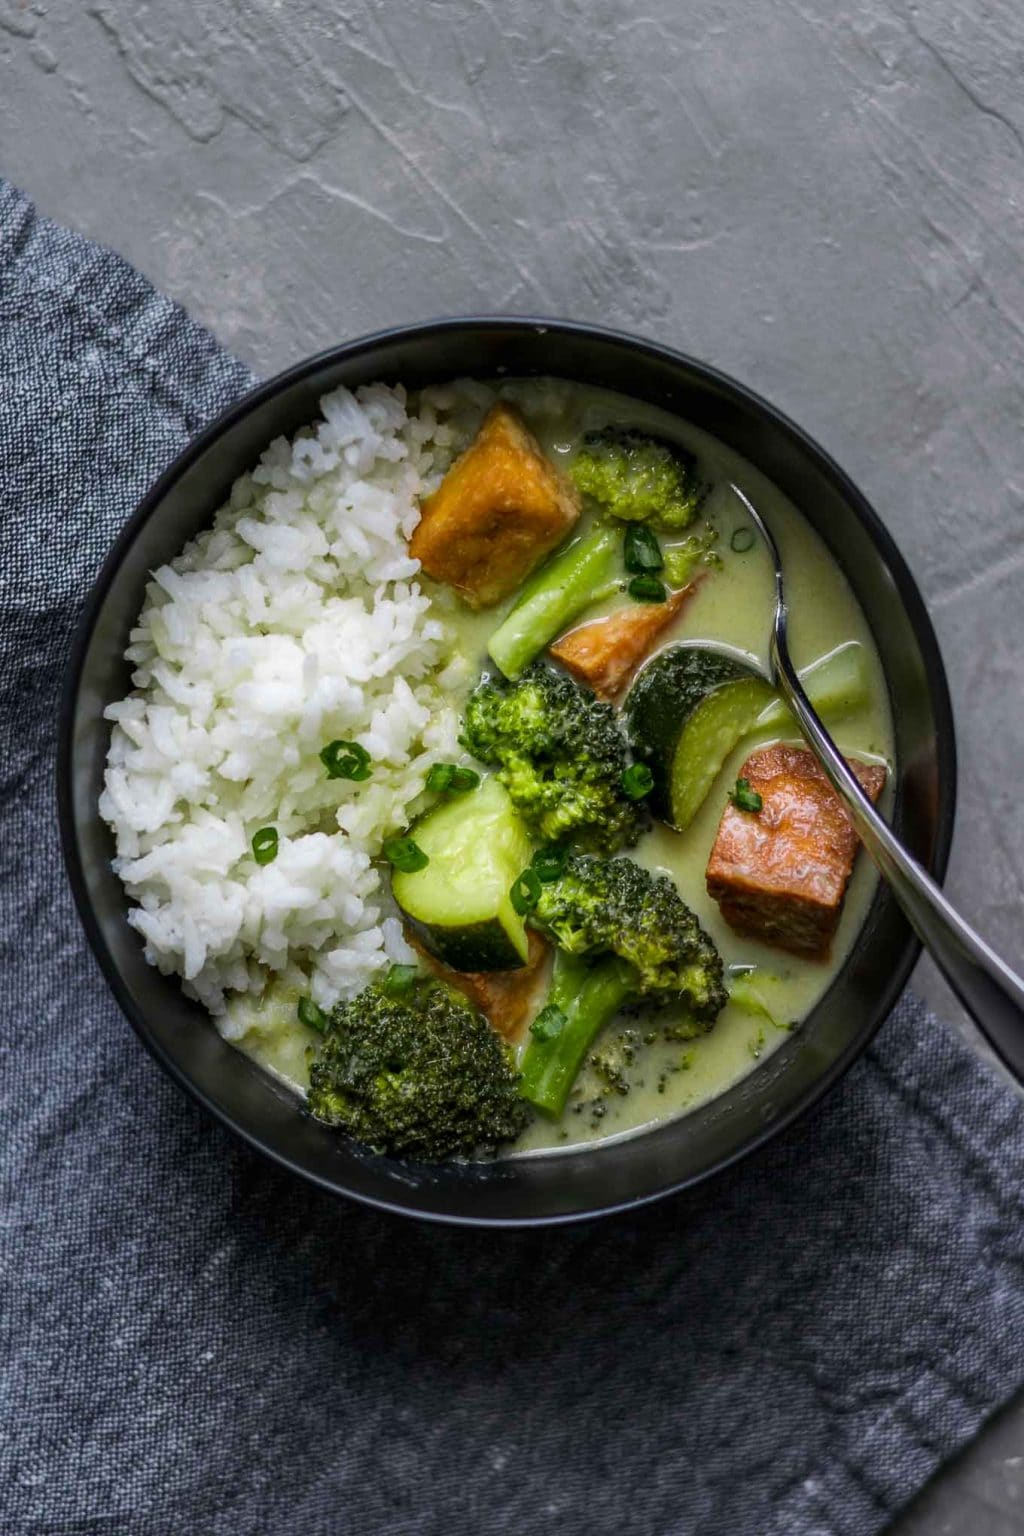 Vegan Thai Green Curry with Tofu, Broccoli, and Zucchini